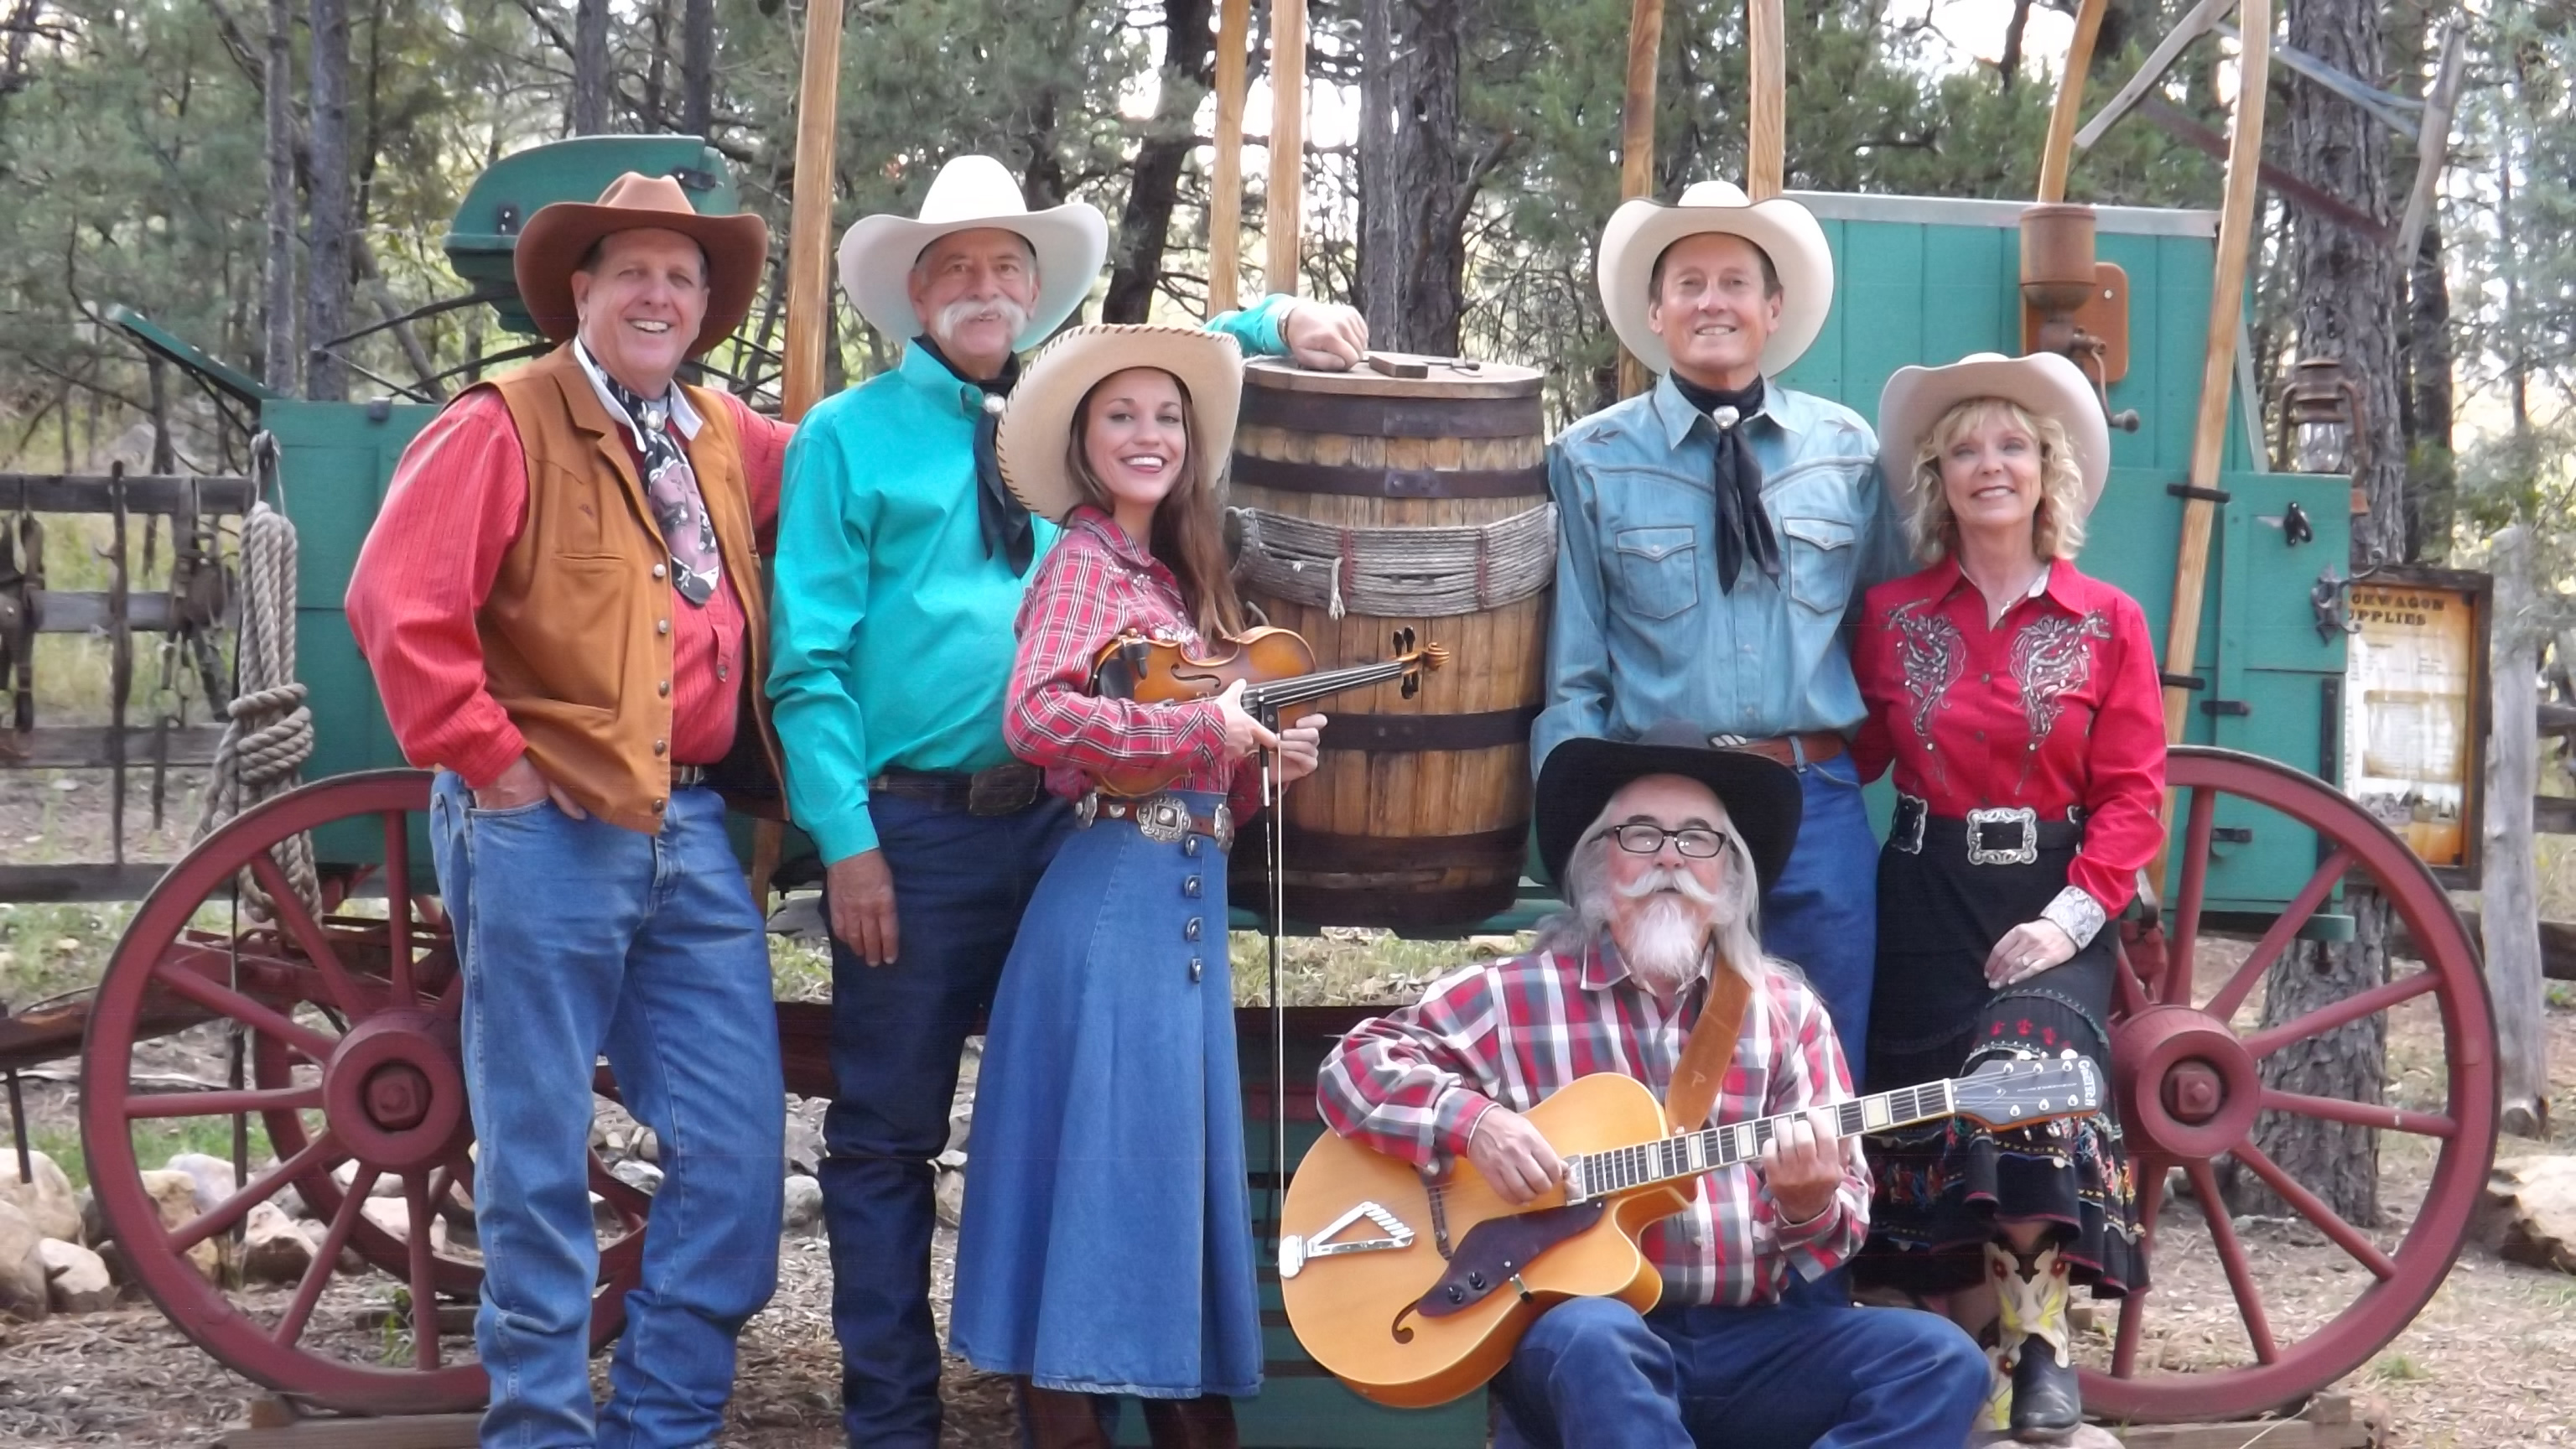 Night of old-school cowboy songs in Palo Duro Canyon on tap from Flying J Wranglers and 'Texas' producers